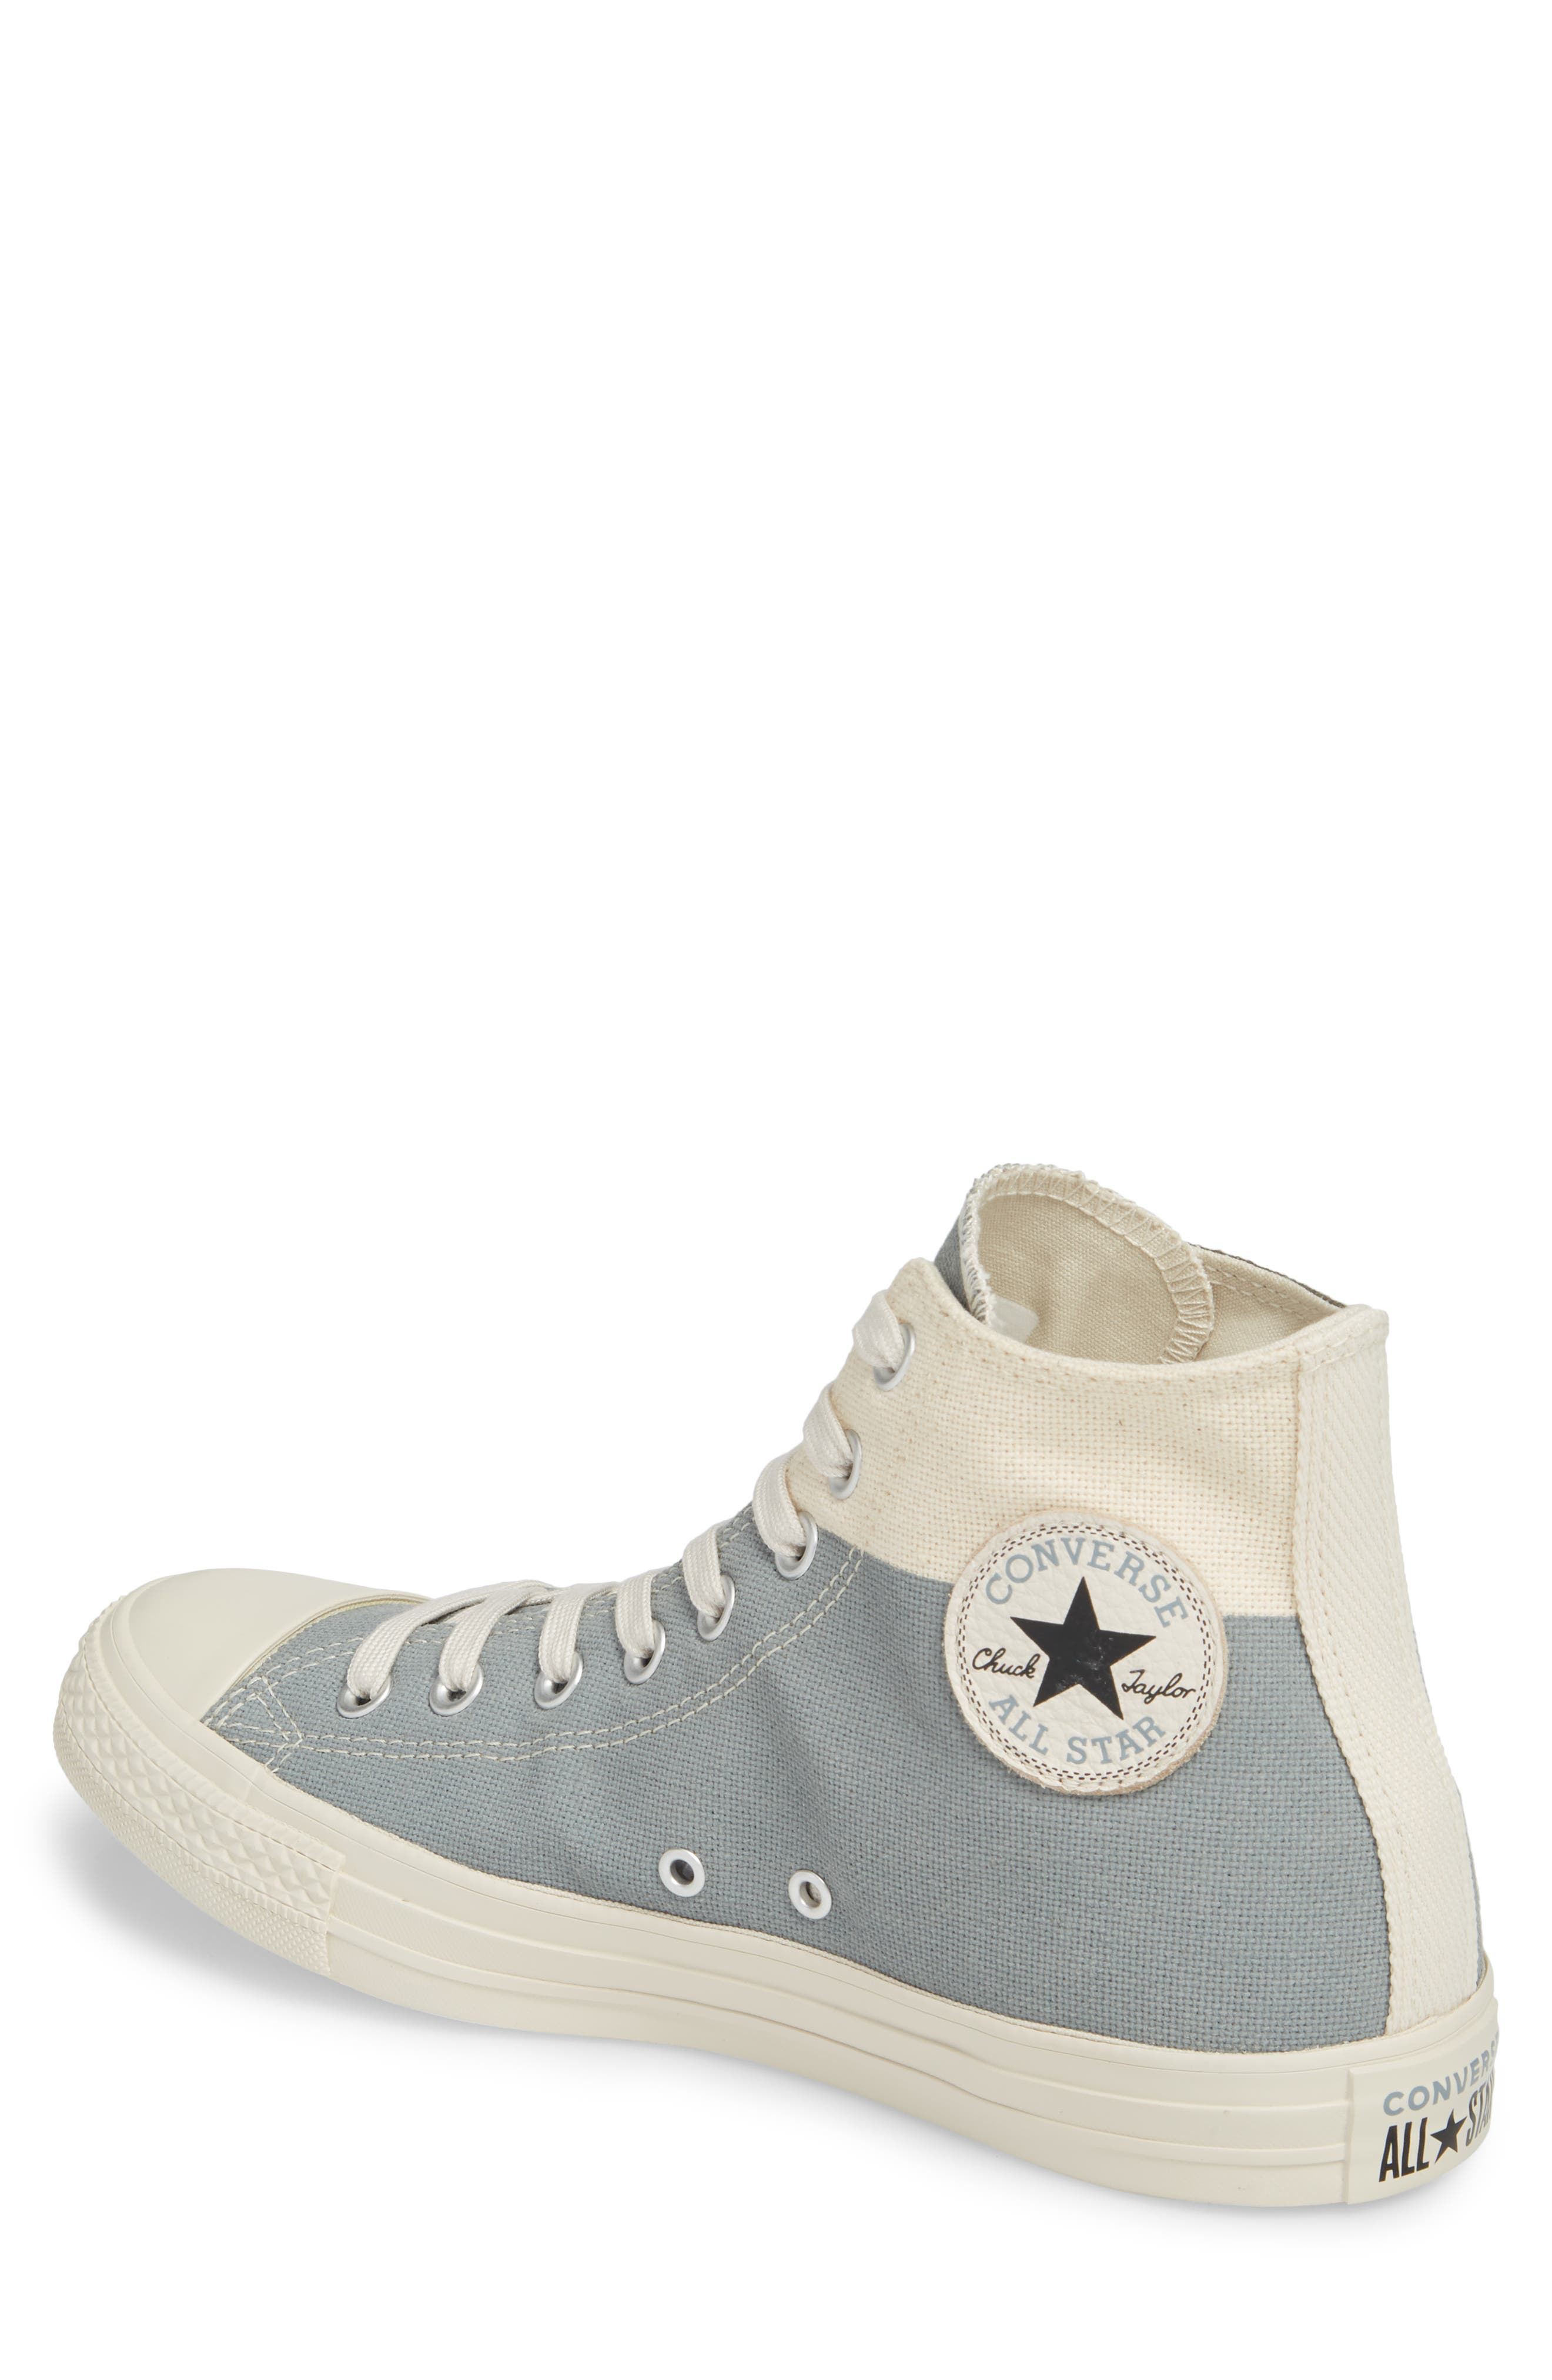 Chuck Taylor<sup>®</sup> All Star<sup>®</sup> Jute Americana High Top Sneaker,                             Alternate thumbnail 2, color,                             020